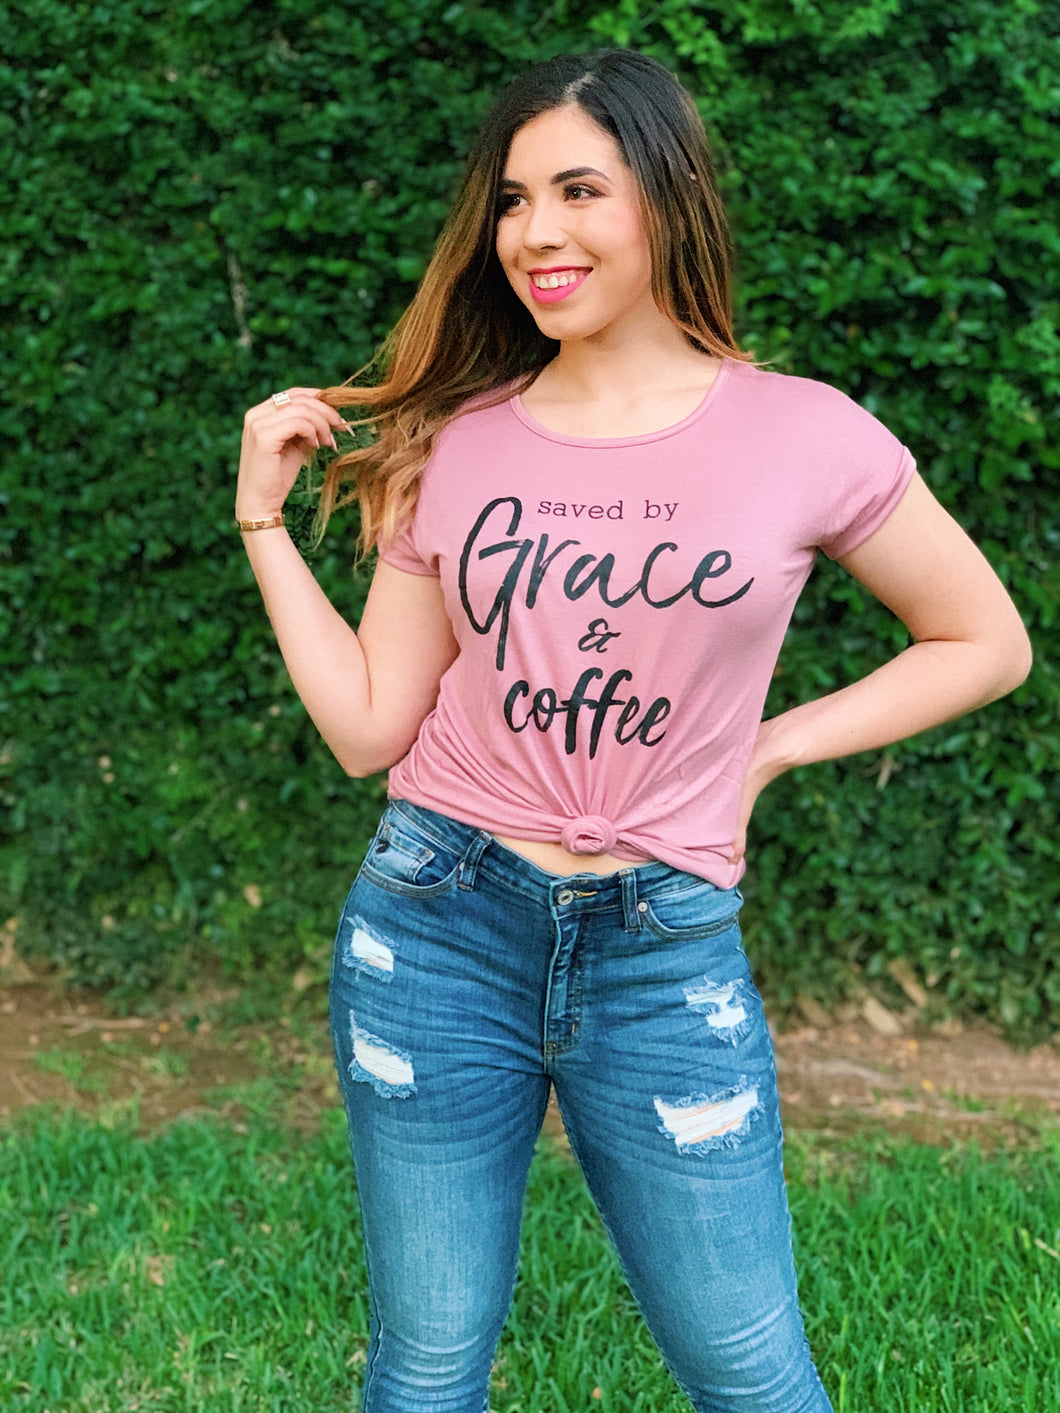 Saved by Grace & Coffee - Graphic Tee